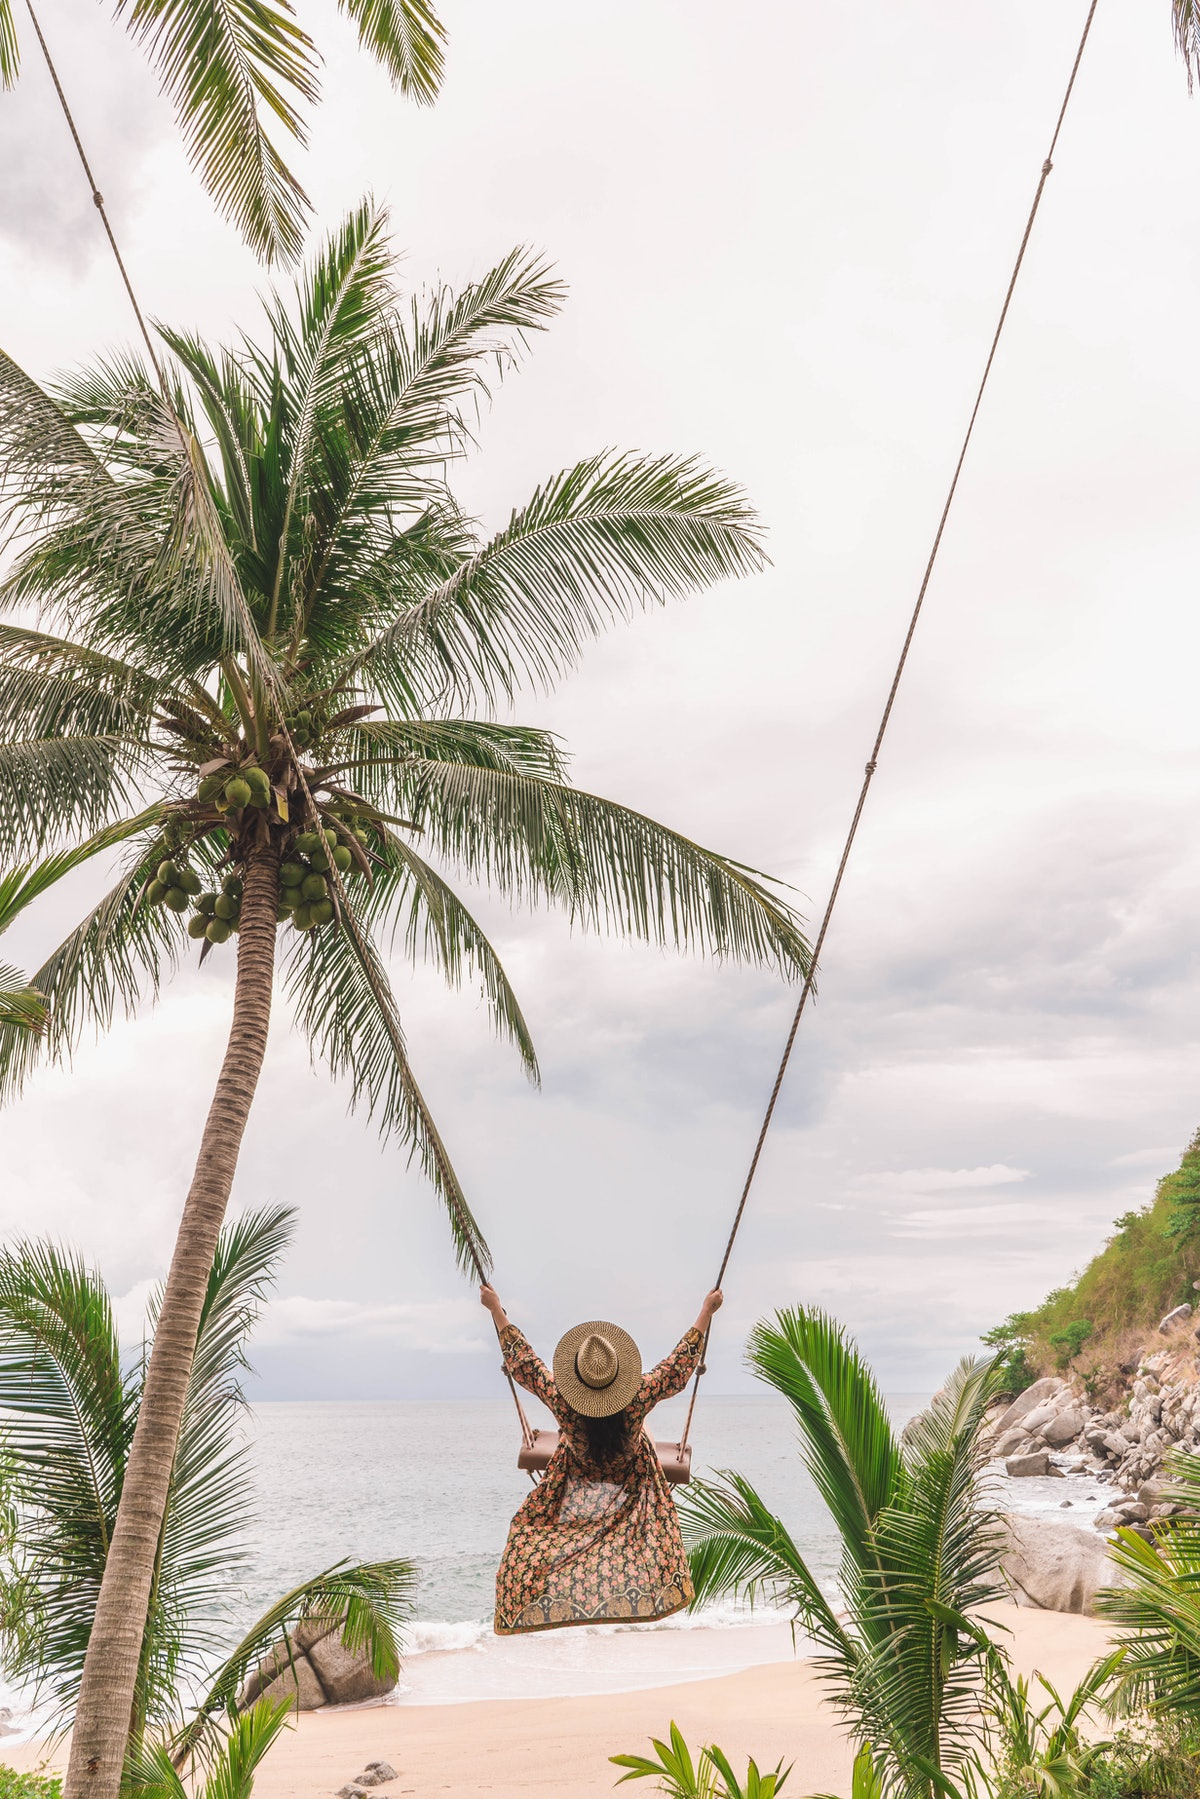 A woman in a flowy dress swings on a long rope swing in the middle of palm trees